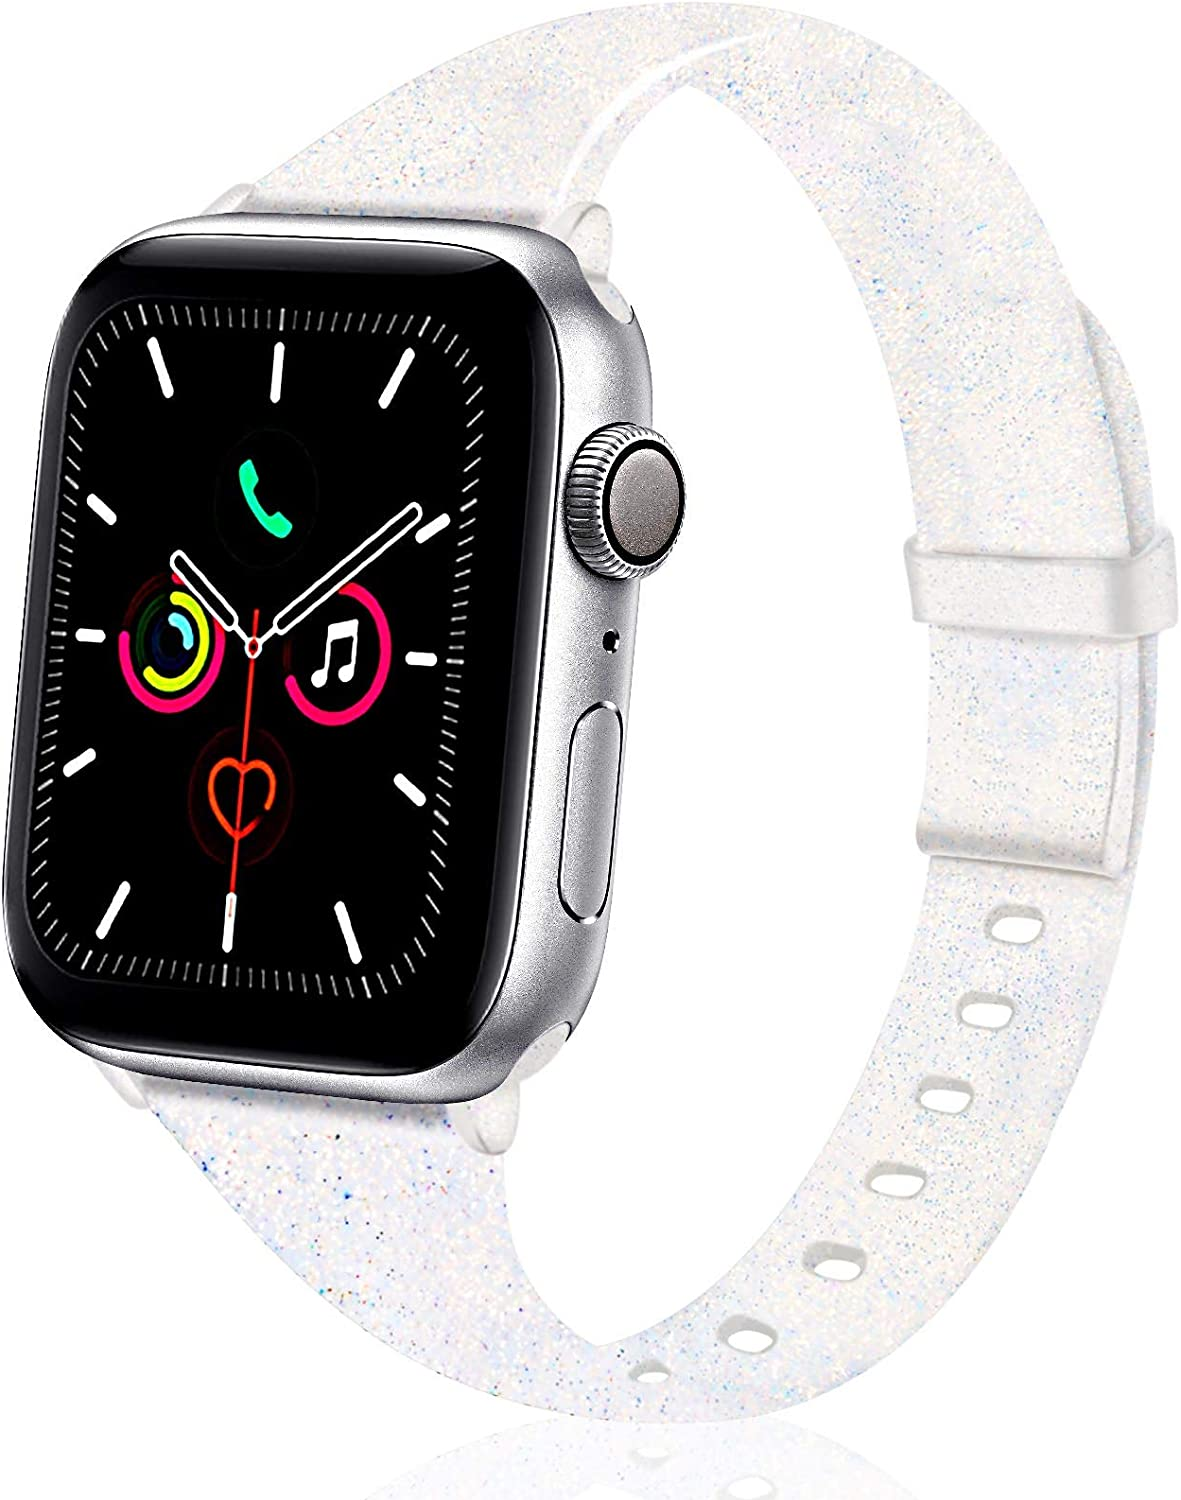 TSAAGAN Glitter Slim Silicone Band Compatible with Apple Watch 38mm 42mm 40mm 44mm, Sparkly Bling Thin Replacement Wristband Accessory for iWatch Series 5/4/3/2/1 (Glitter Colorful, 38mm/40mm)